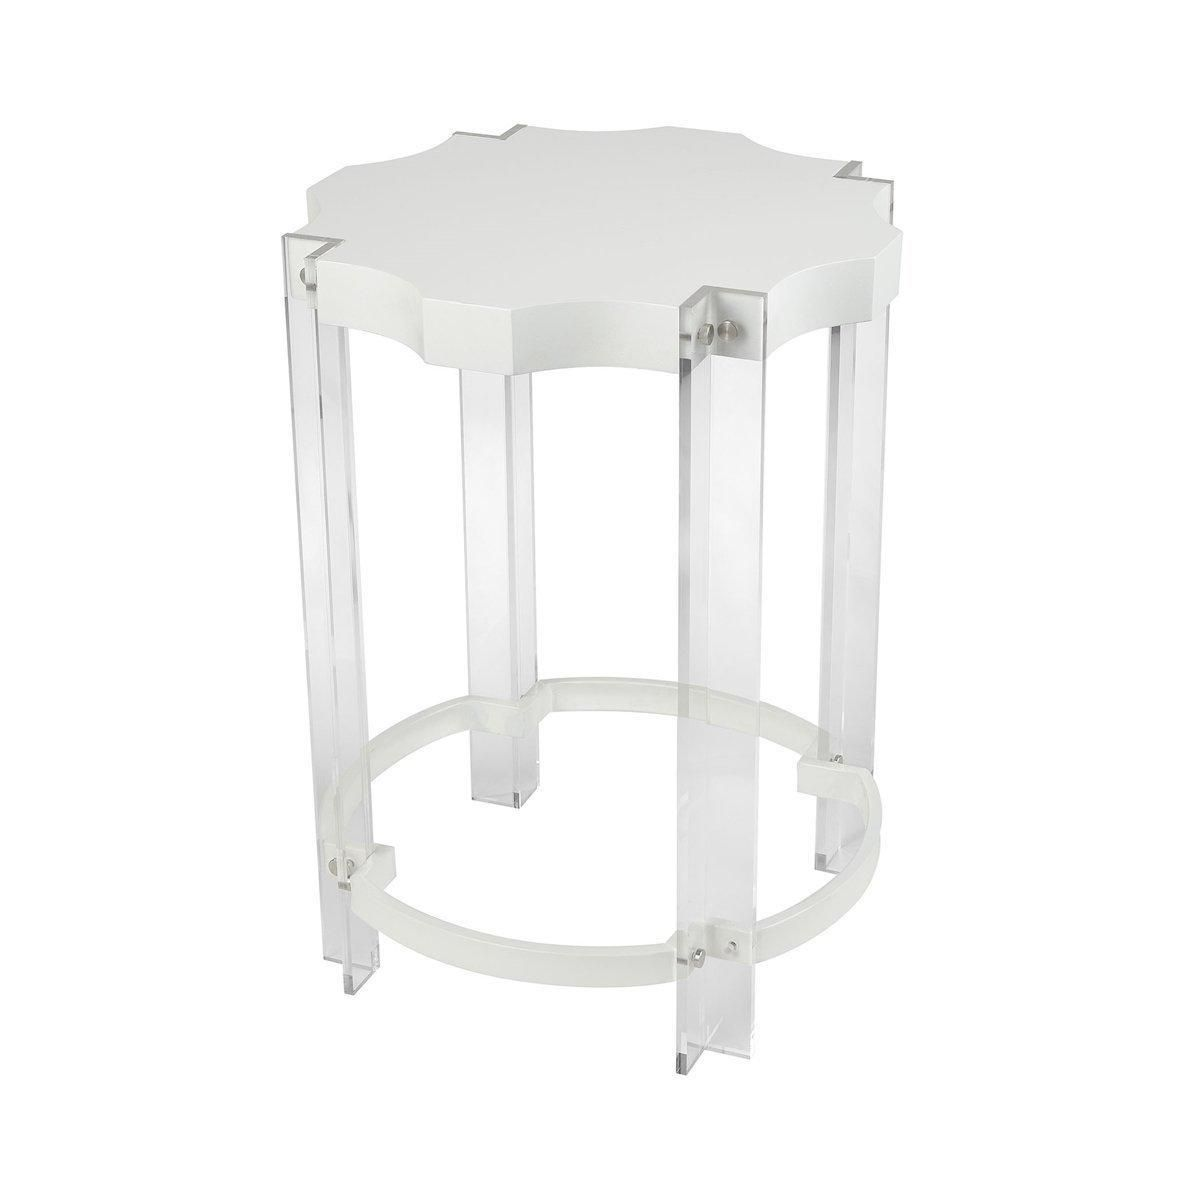 kamchatka accent table sterling products modern white nursery nightstand living spaces end tables kidney shaped inch pub dining room hiend accents nautical hanging lantern pottery